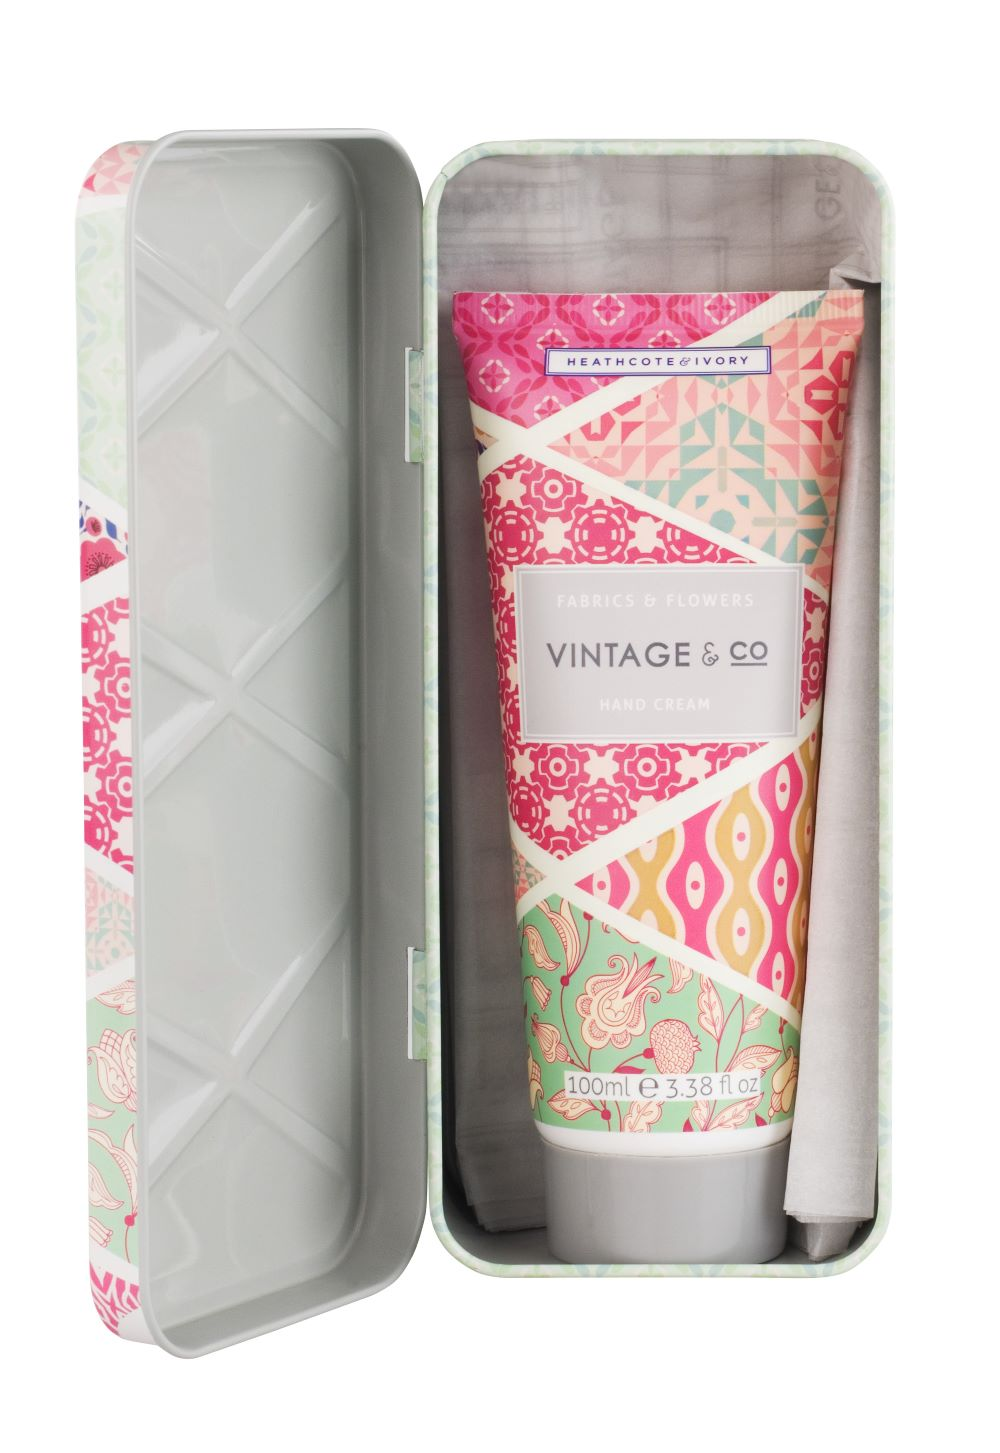 *NEW* Vintage & Co - Fabric & Flowers Hand Cream 100 ml